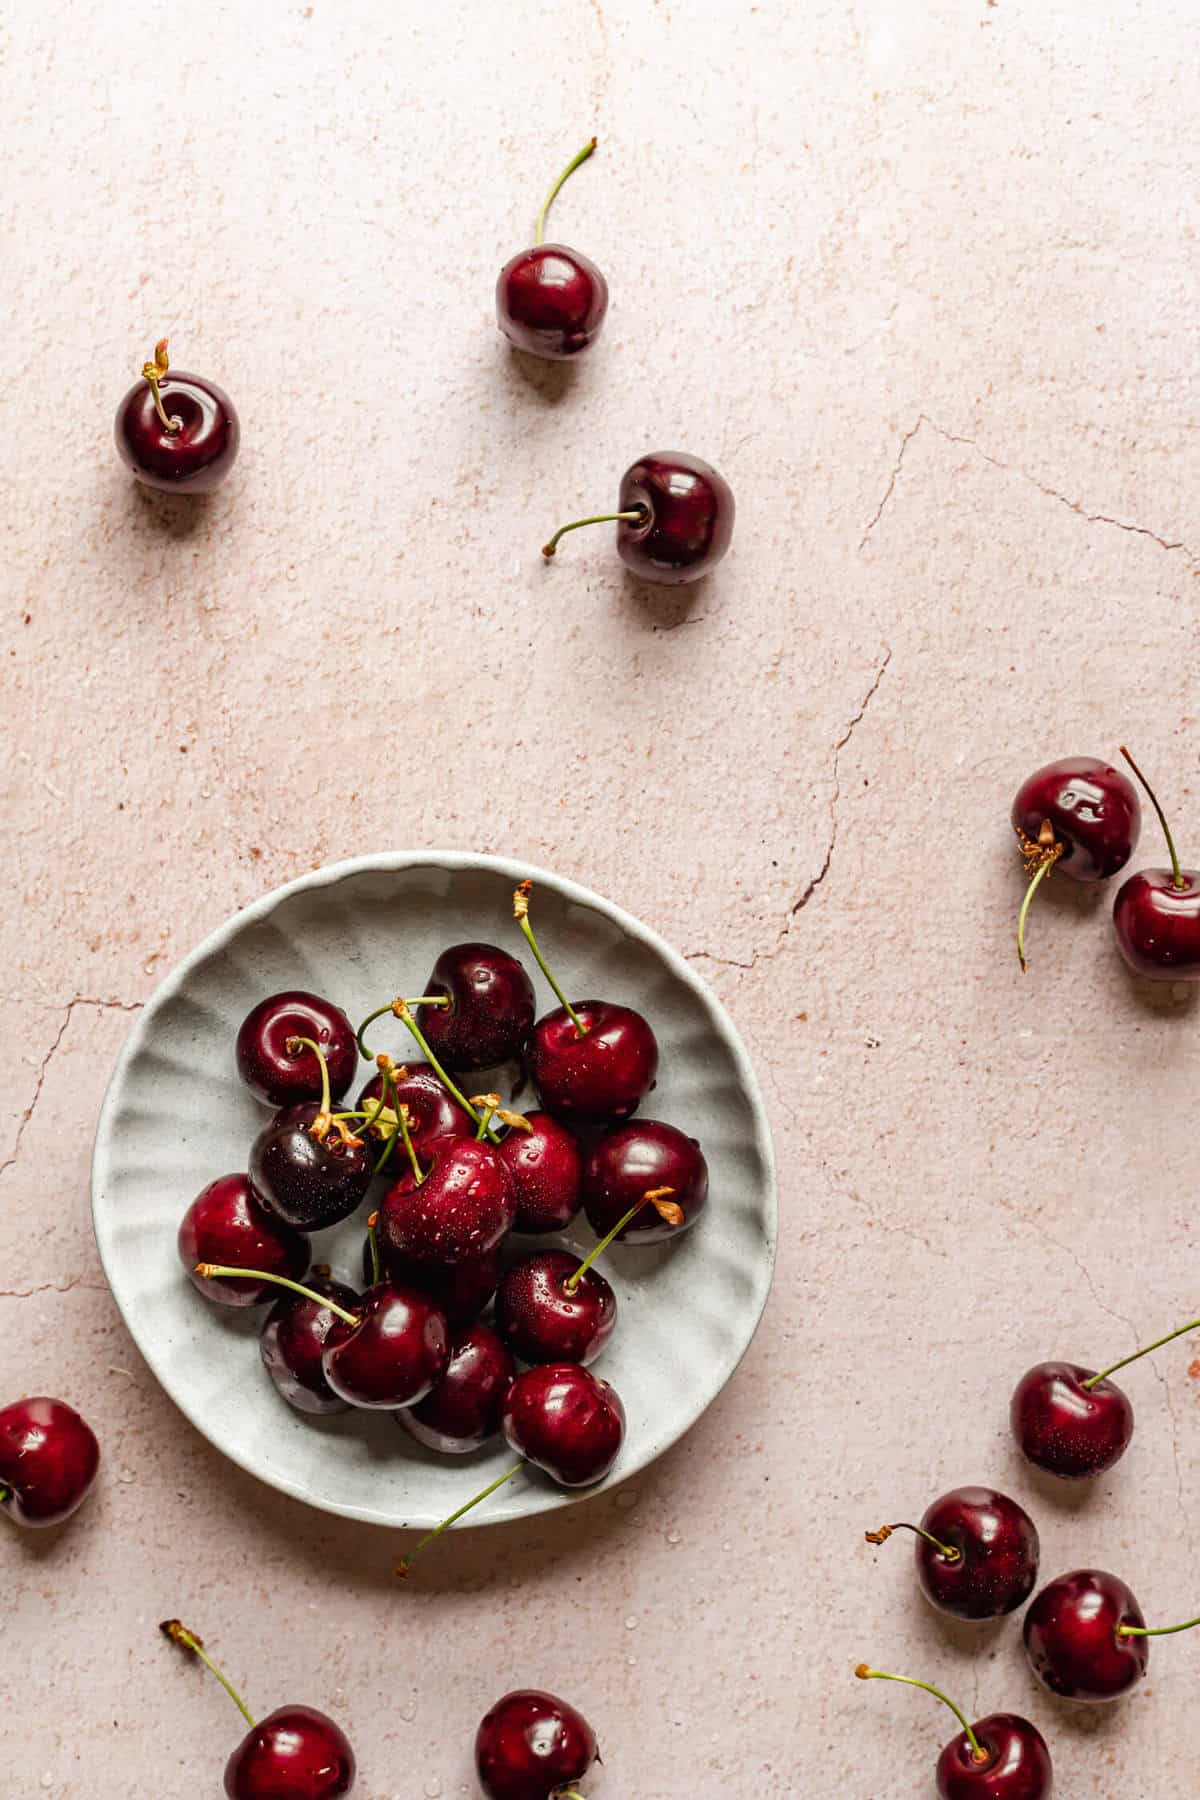 a small dish of cherries with a few more cherries scattered around